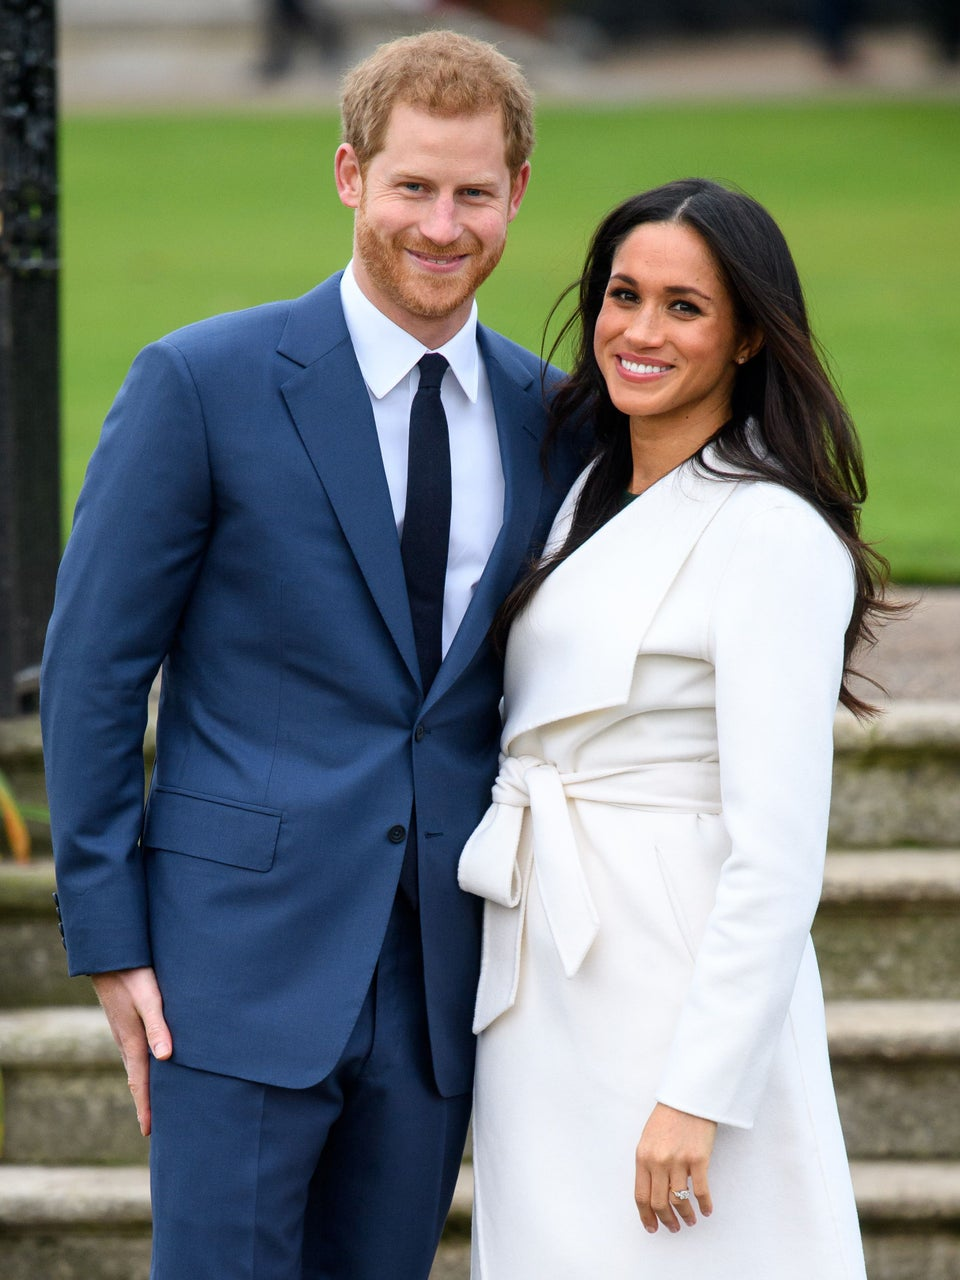 You'll Never Guess Where Prince Harry And Meghan Markle Are Spending Valentine's Day